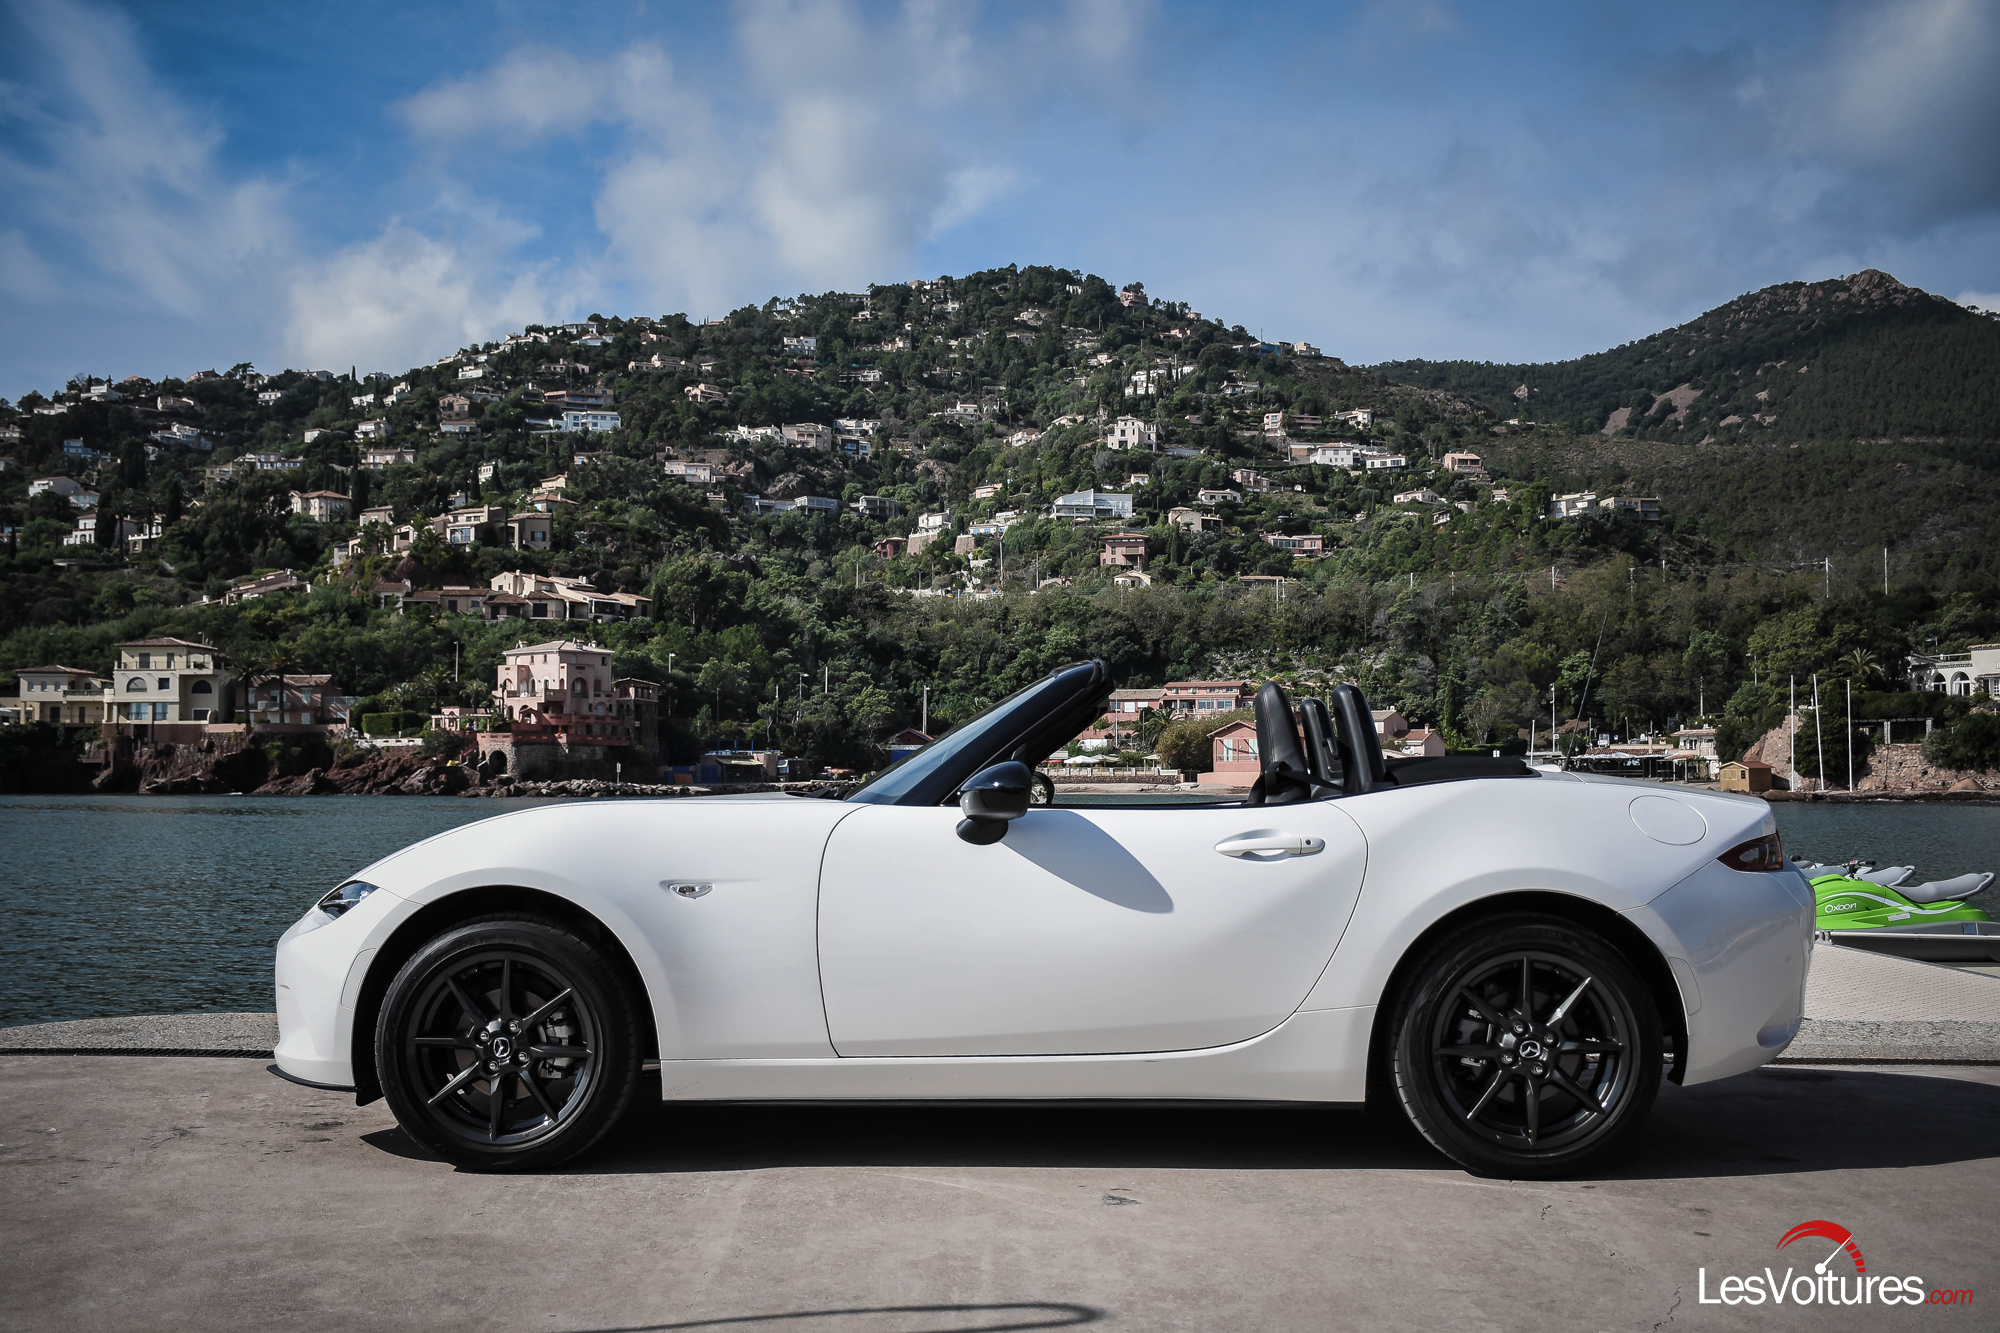 essai test drive mazda mx5 miata 5 les voitures. Black Bedroom Furniture Sets. Home Design Ideas